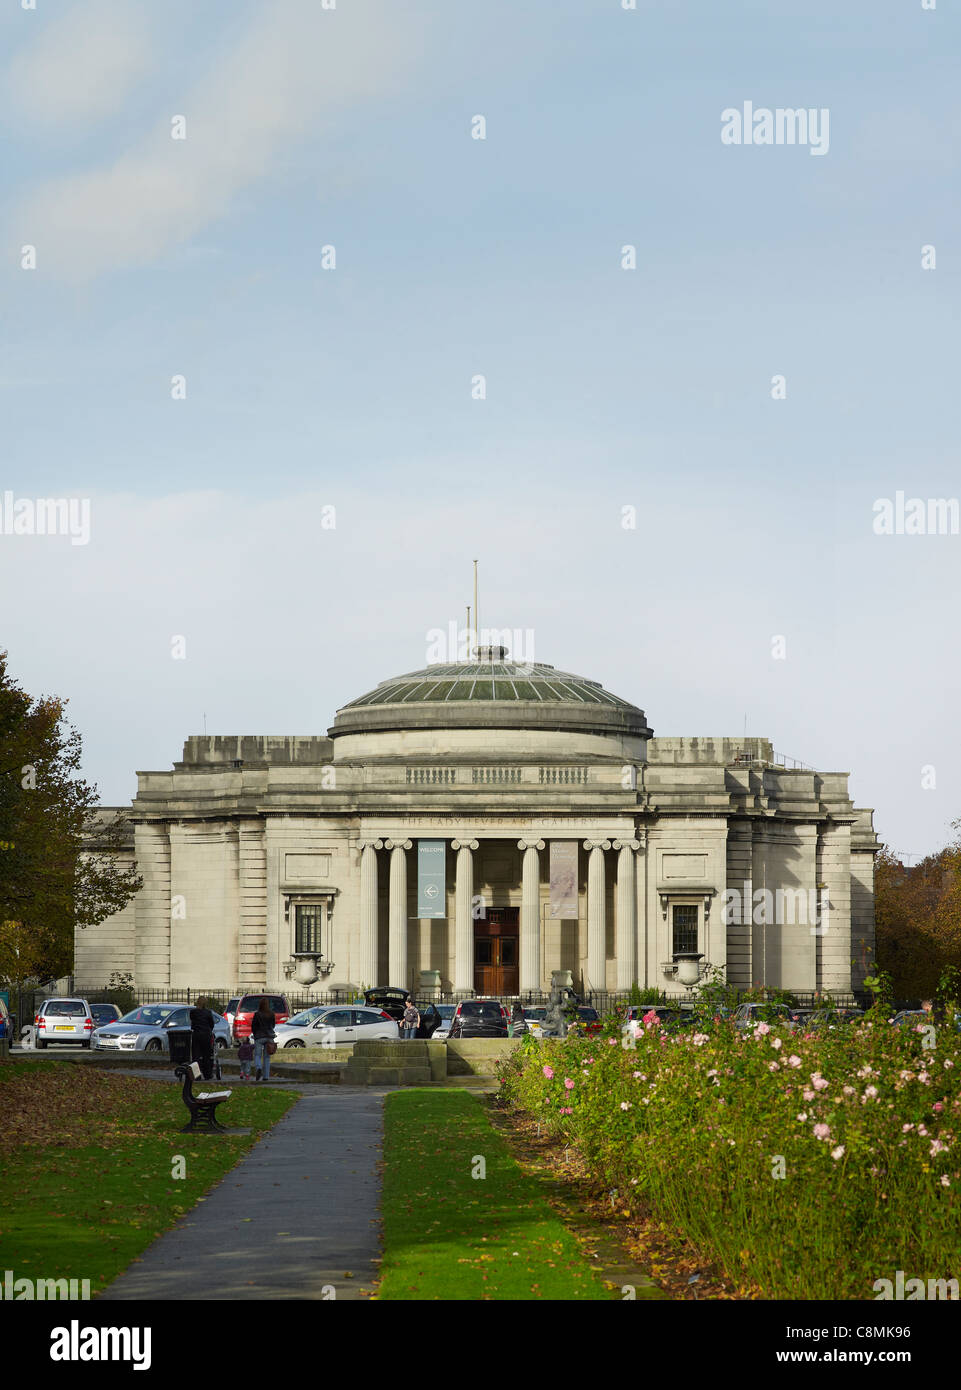 Port Sunlight Lady Lever Art Gallery, Cheshire - Stock Image